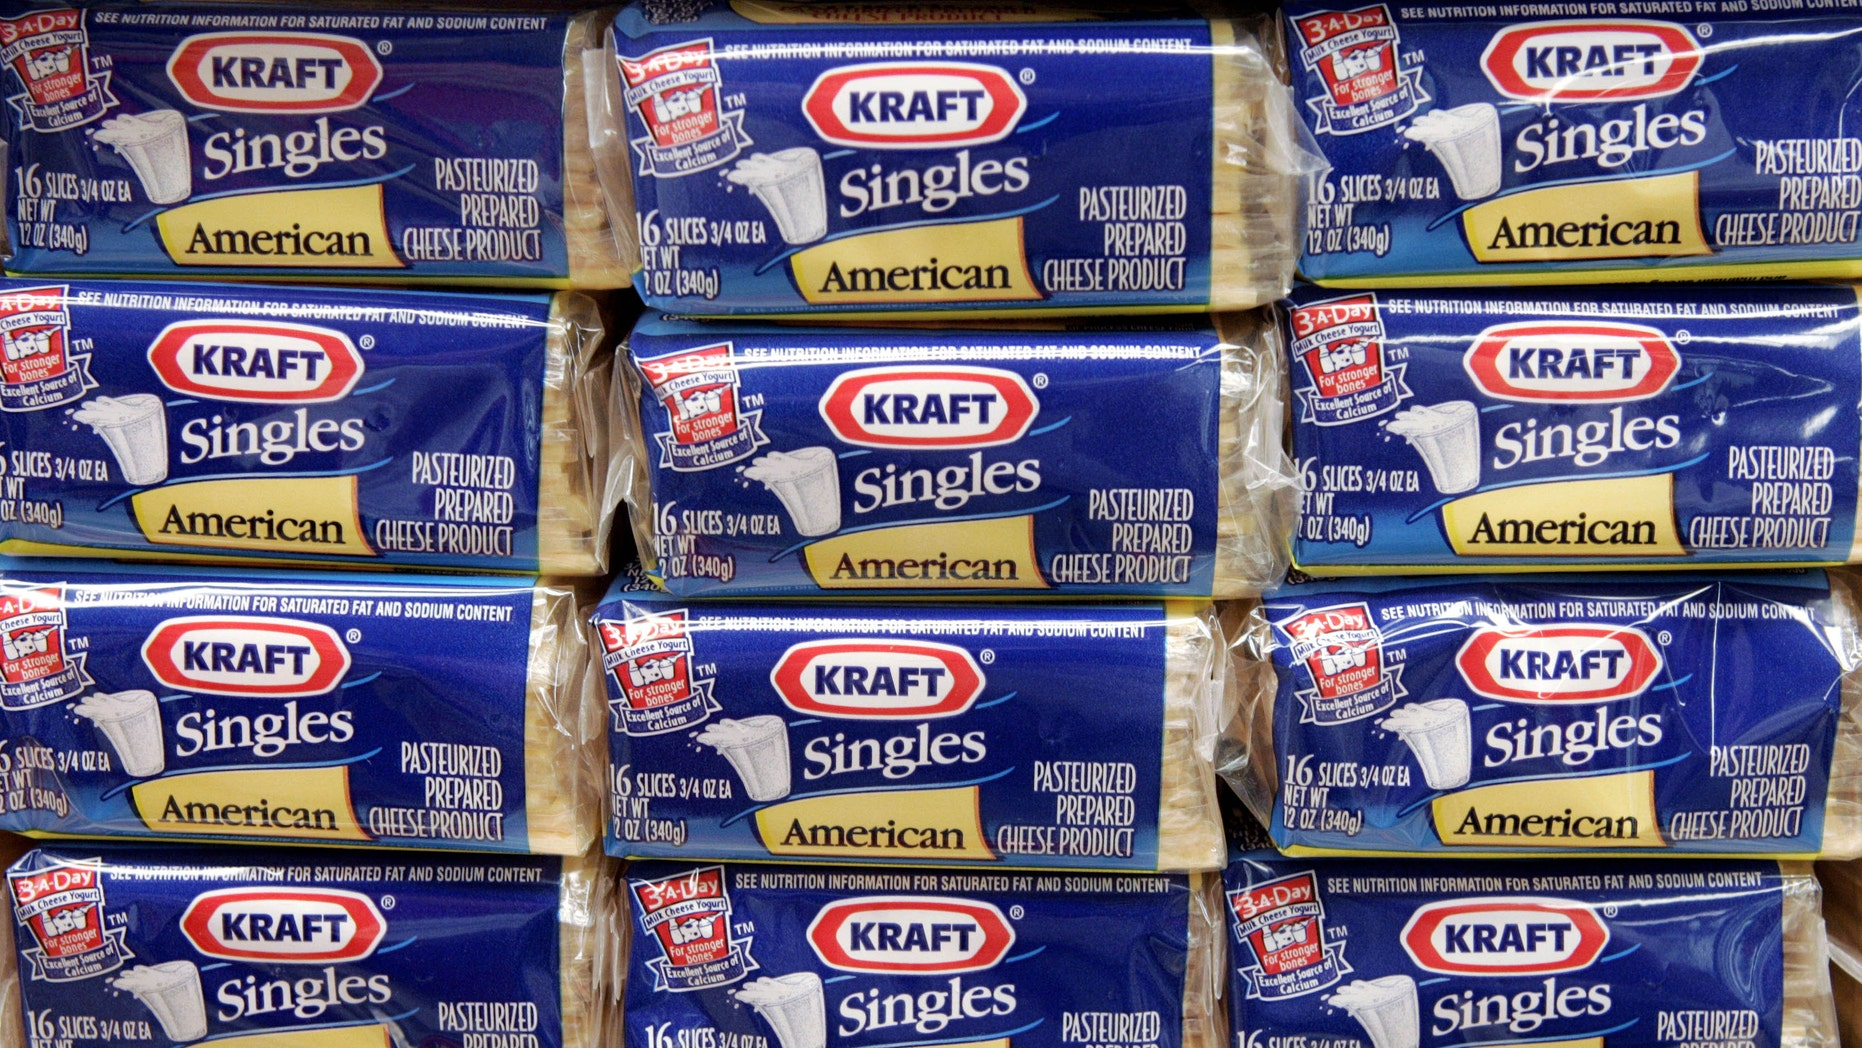 Packages of Kraft Singles are displayed in Chicago. (AP Photo/Charles Rex Arbogast, file)